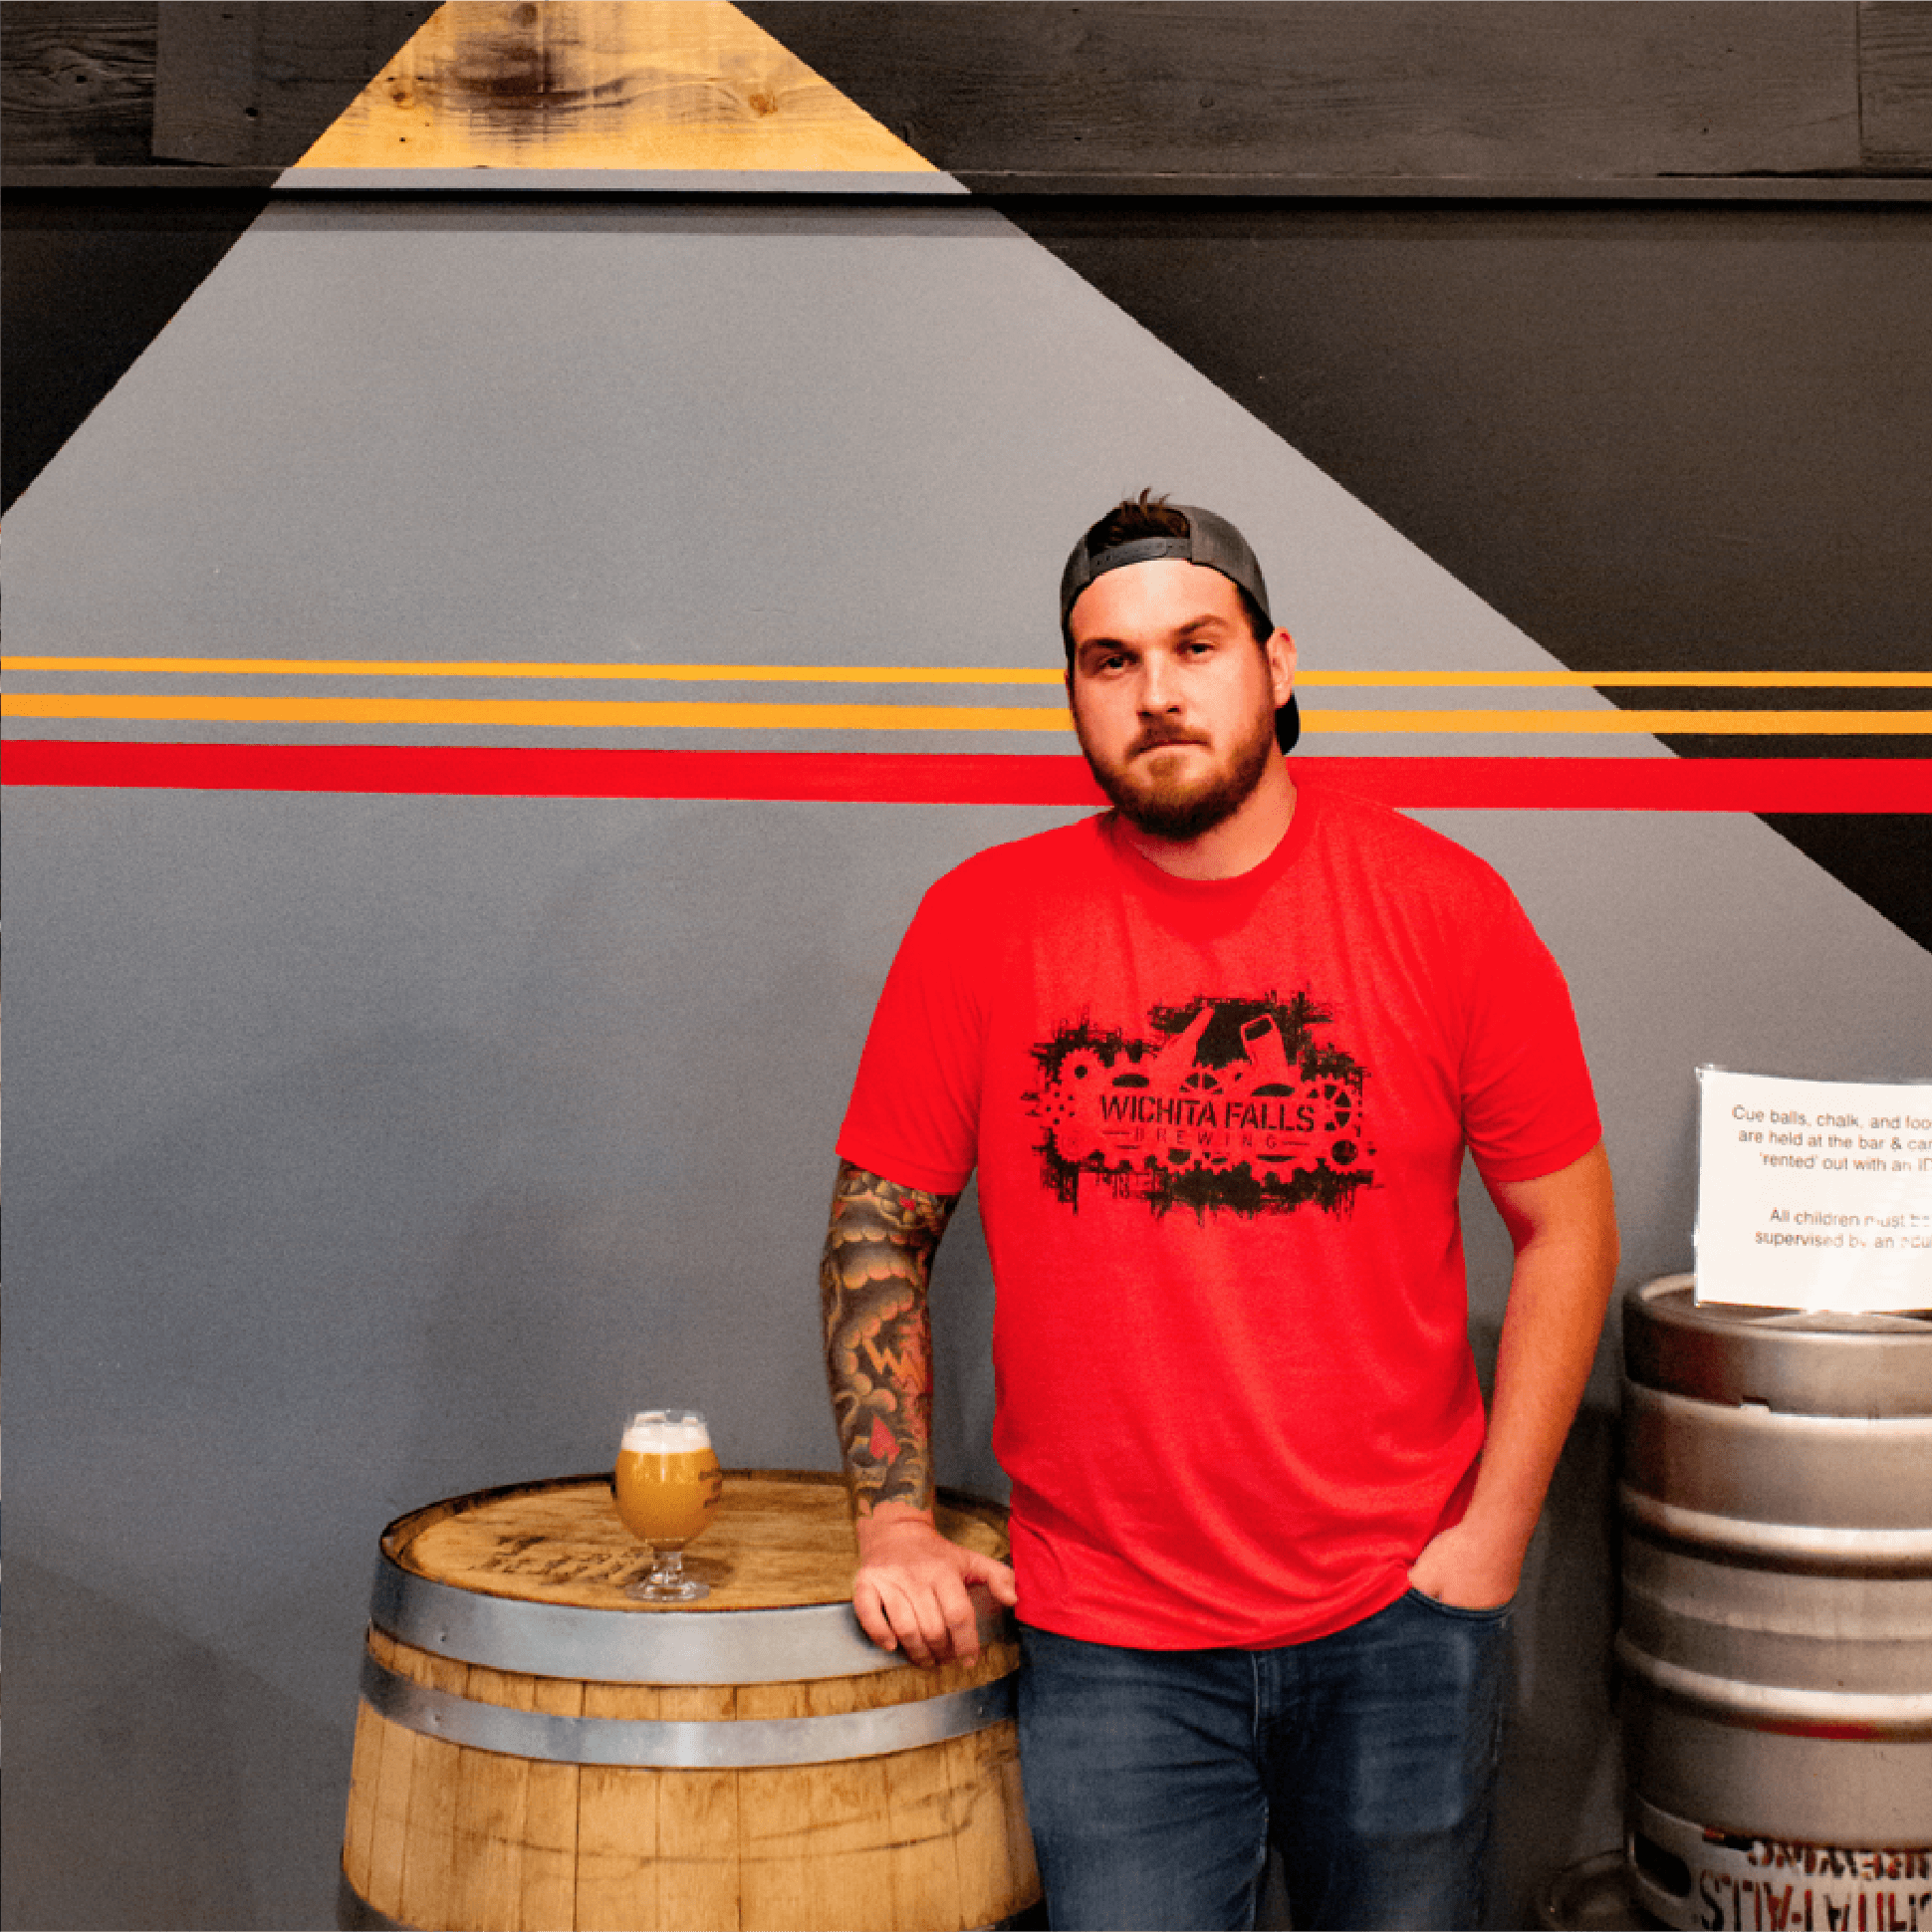 Jorden, our Head Brewer, stands in a red shirt by the inside mural with the red stripes, lookin real cool, posing with his beer